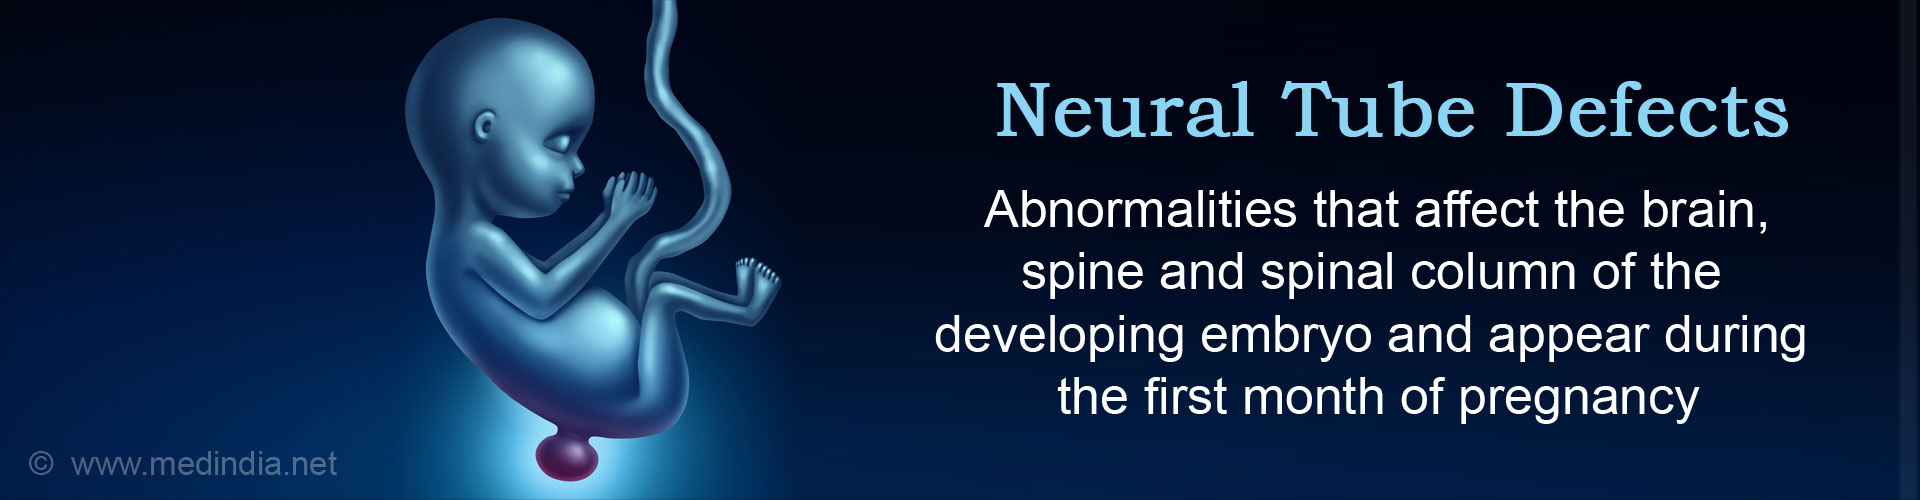 Neural Tube Defects - Types, Causes, Diagnosis & Treatment